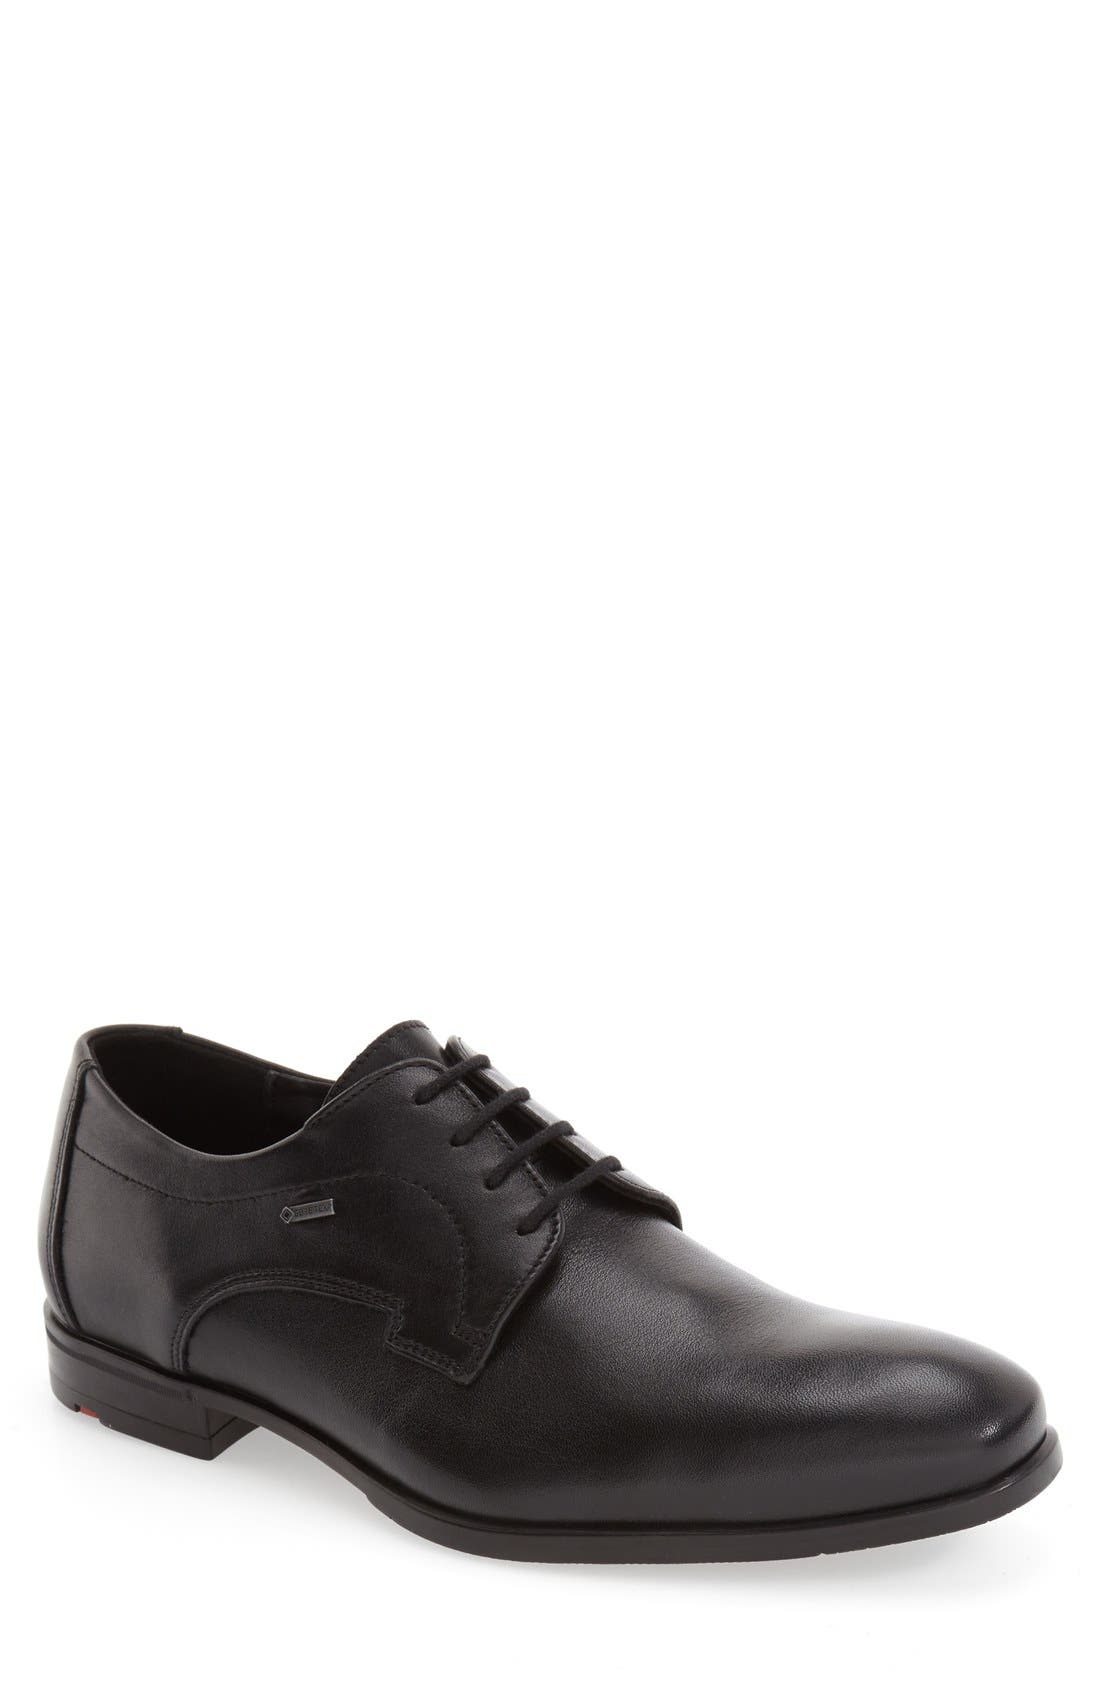 Main Image - Lloyd 'Valencia' Plain Toe Derby (Men)